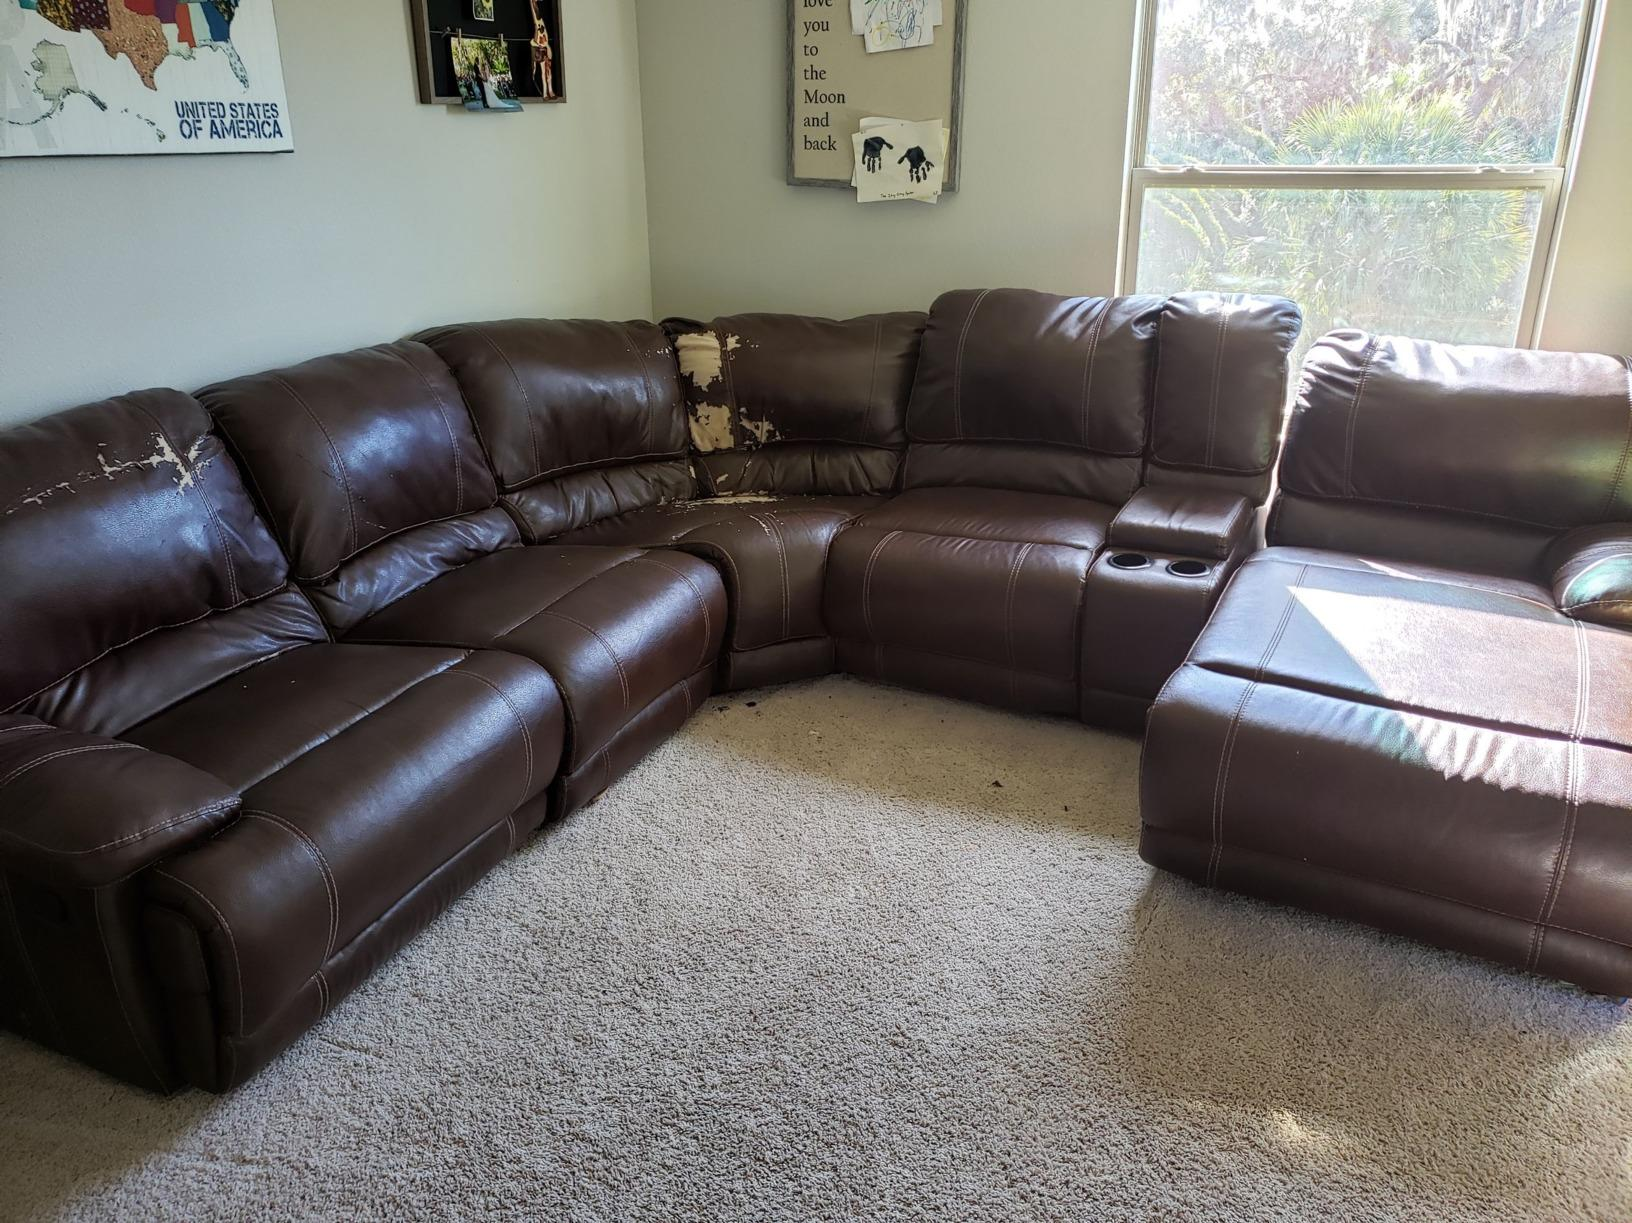 Couch Removal in Parrish, FL - Before Photo